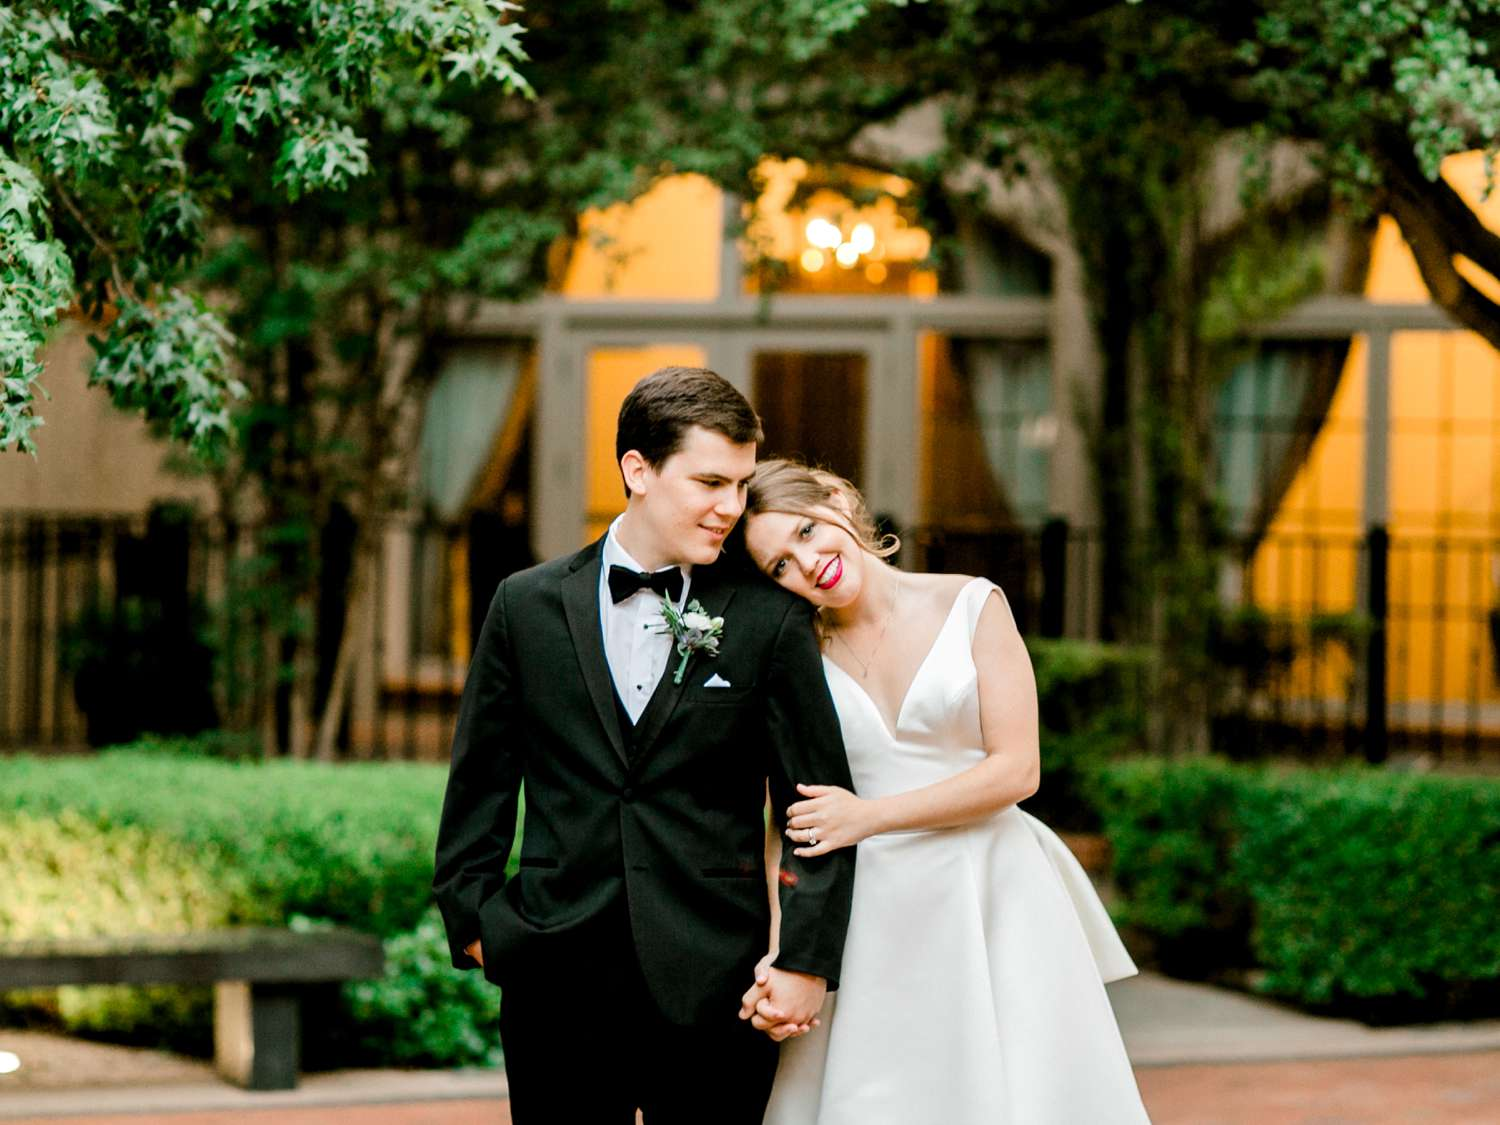 HANNAH+CRAIG+CHILDS+TEXAS+TECH+WEDDING+ALLEEJ+LUBBOCK+PHOTOGRAPHER_0140.jpg